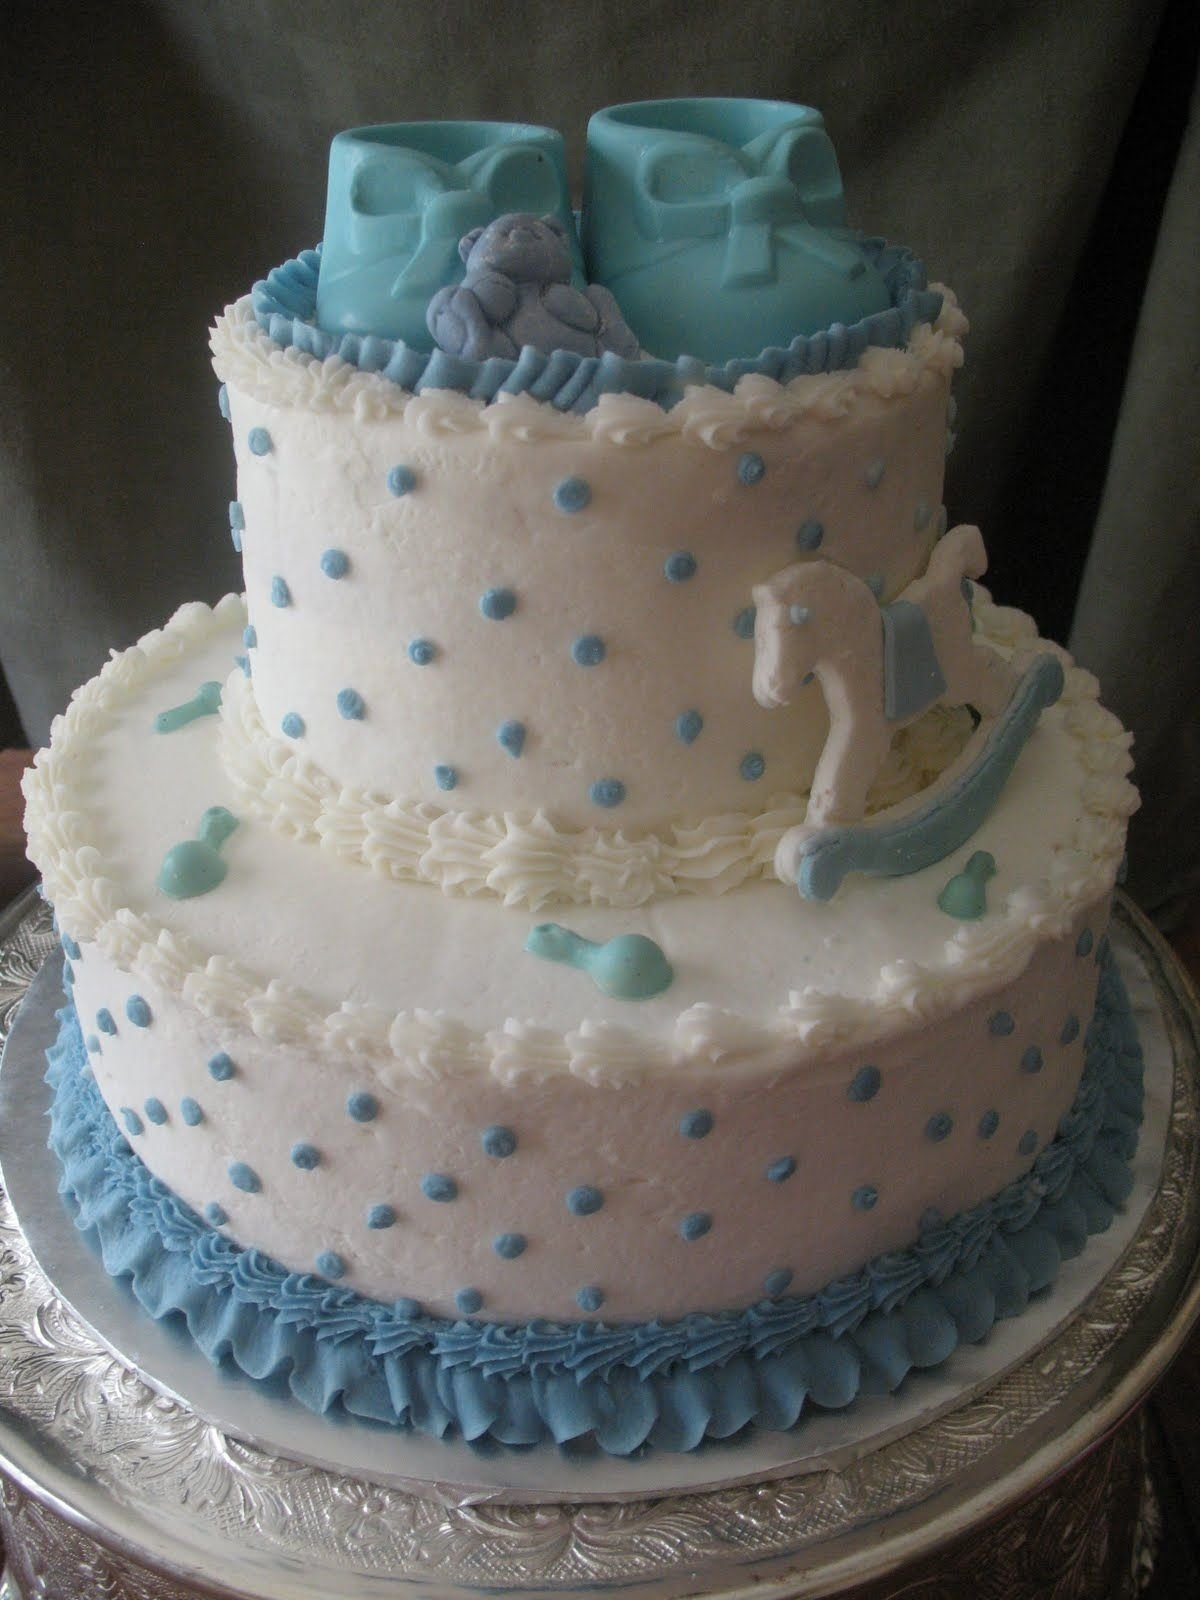 10 Wonderful Ideas For Baby Shower Cakes buttercream baby shower cakes this baby shower cake was an almond 2020